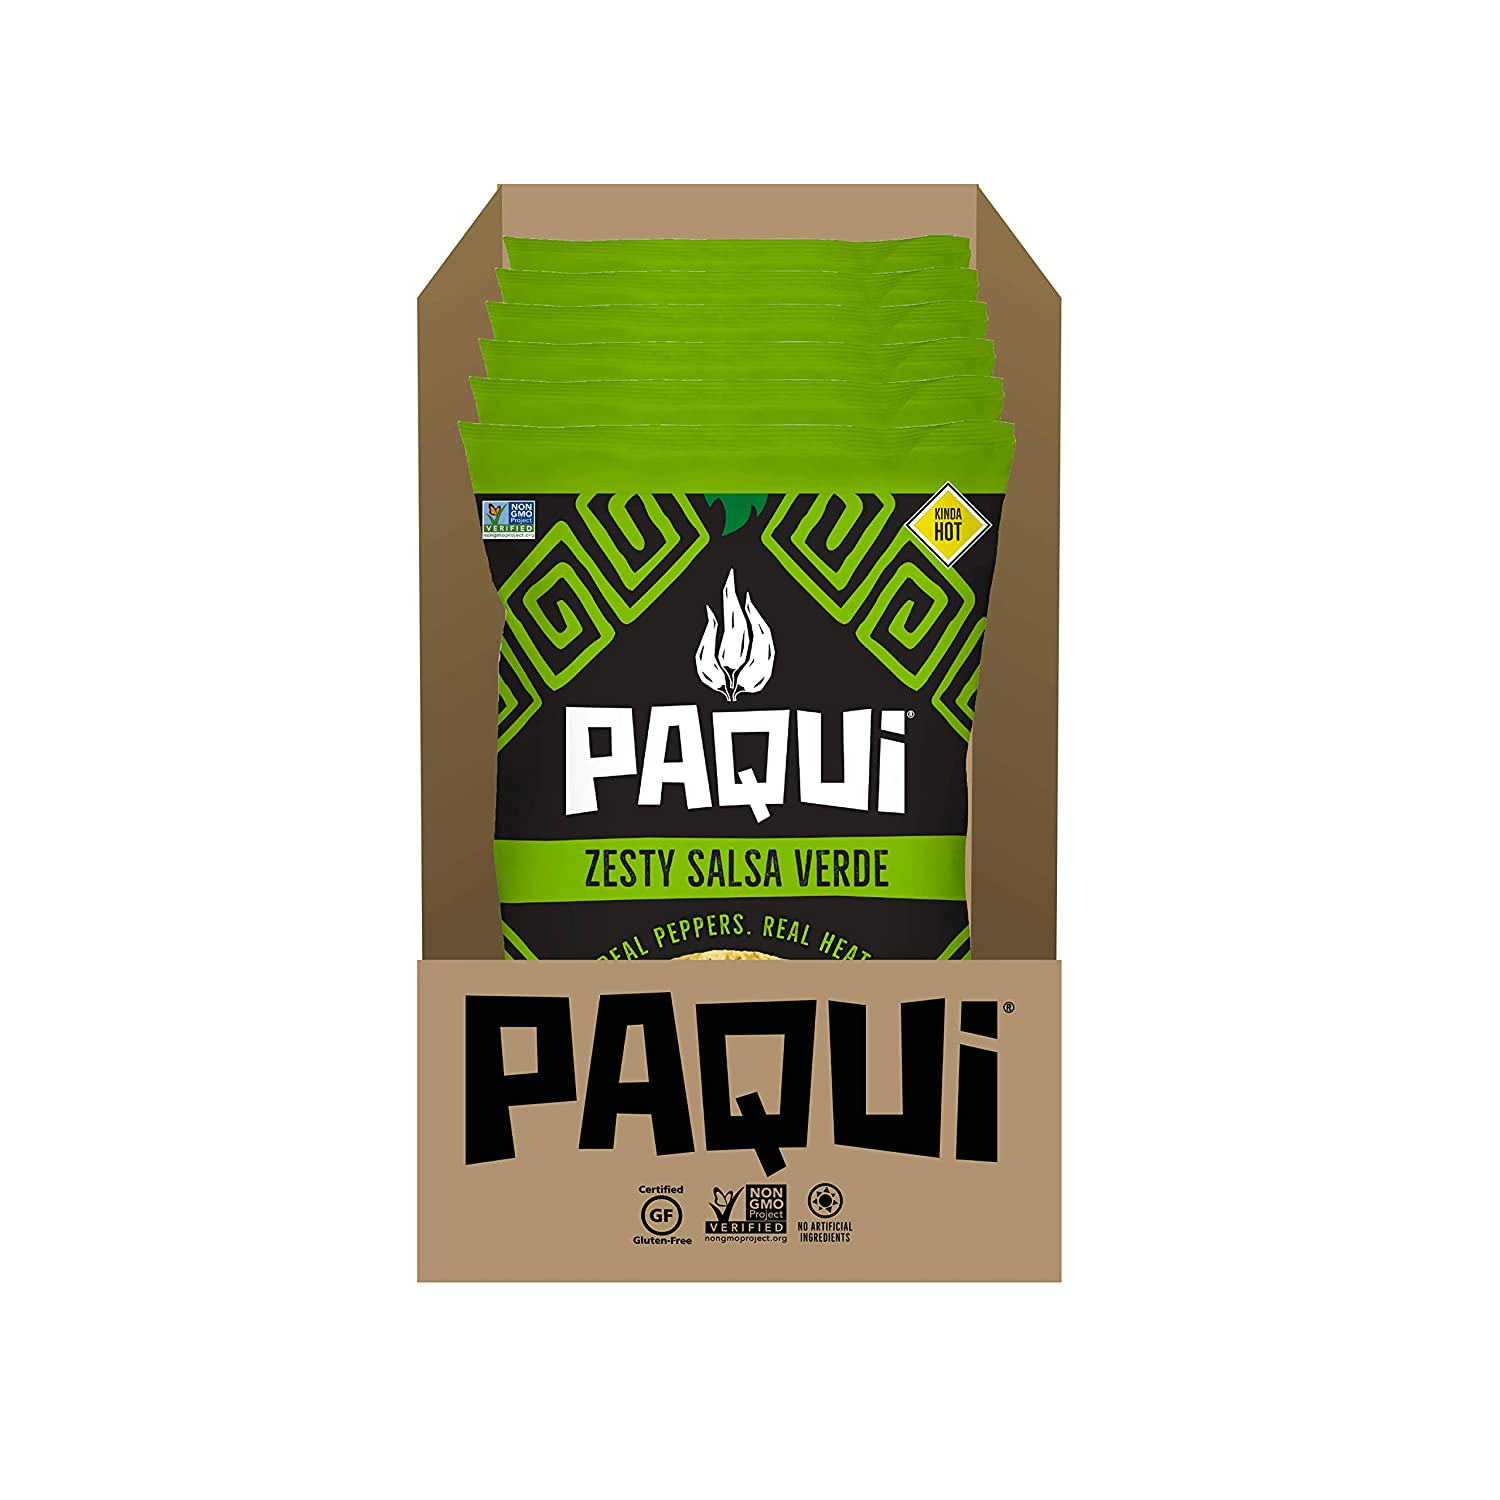 Super beauty product restock quality top! Paqui Zesty Salsa Verde Spicy 2oz Individua Chips We OFFer at cheap prices Tortilla 6ct